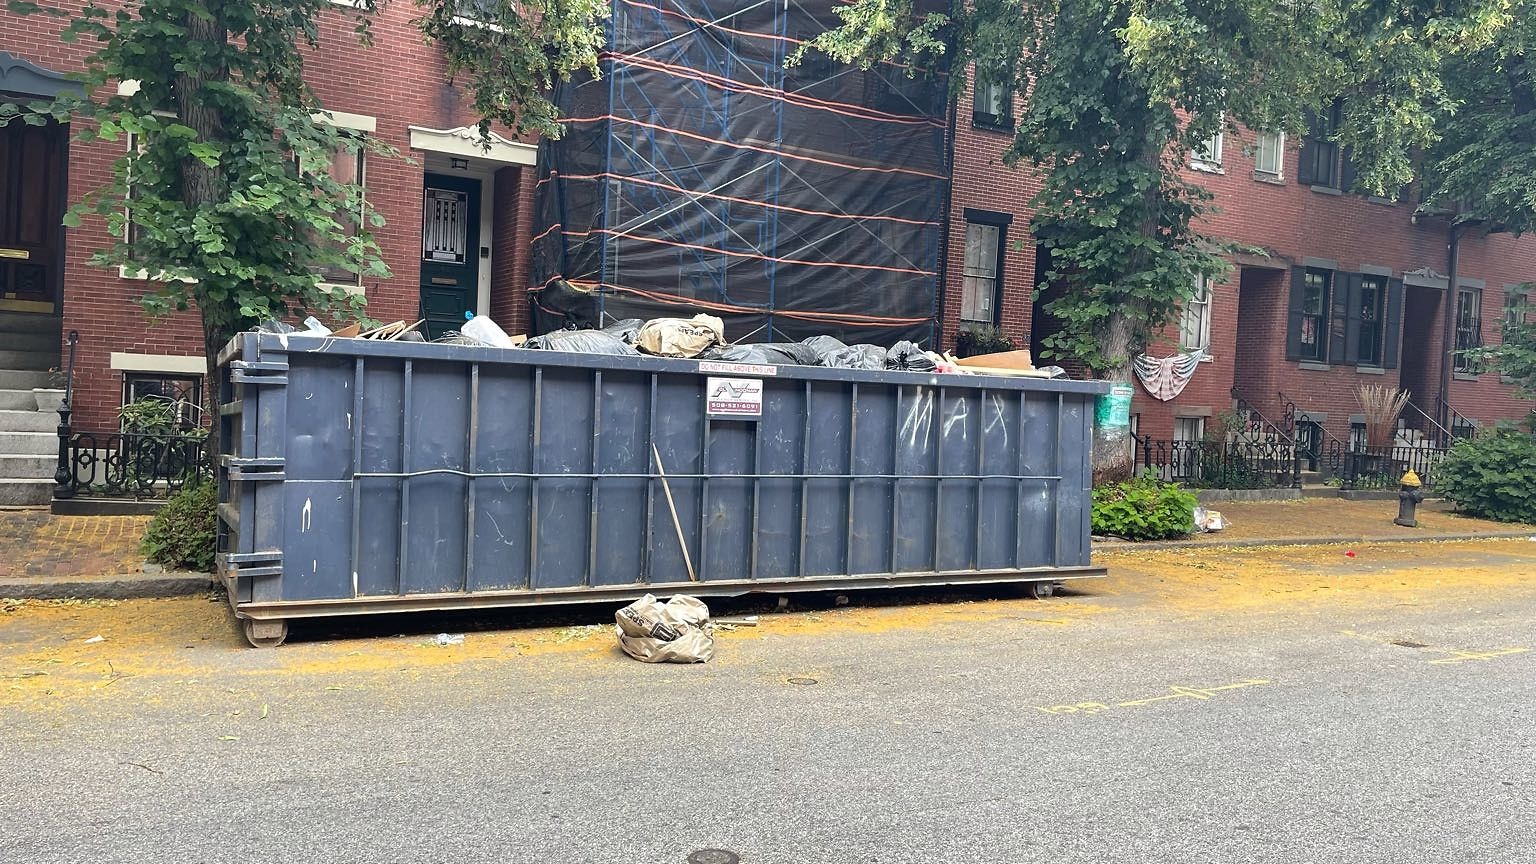 Overflowing dumpster and it's taking up twice the permitted space.